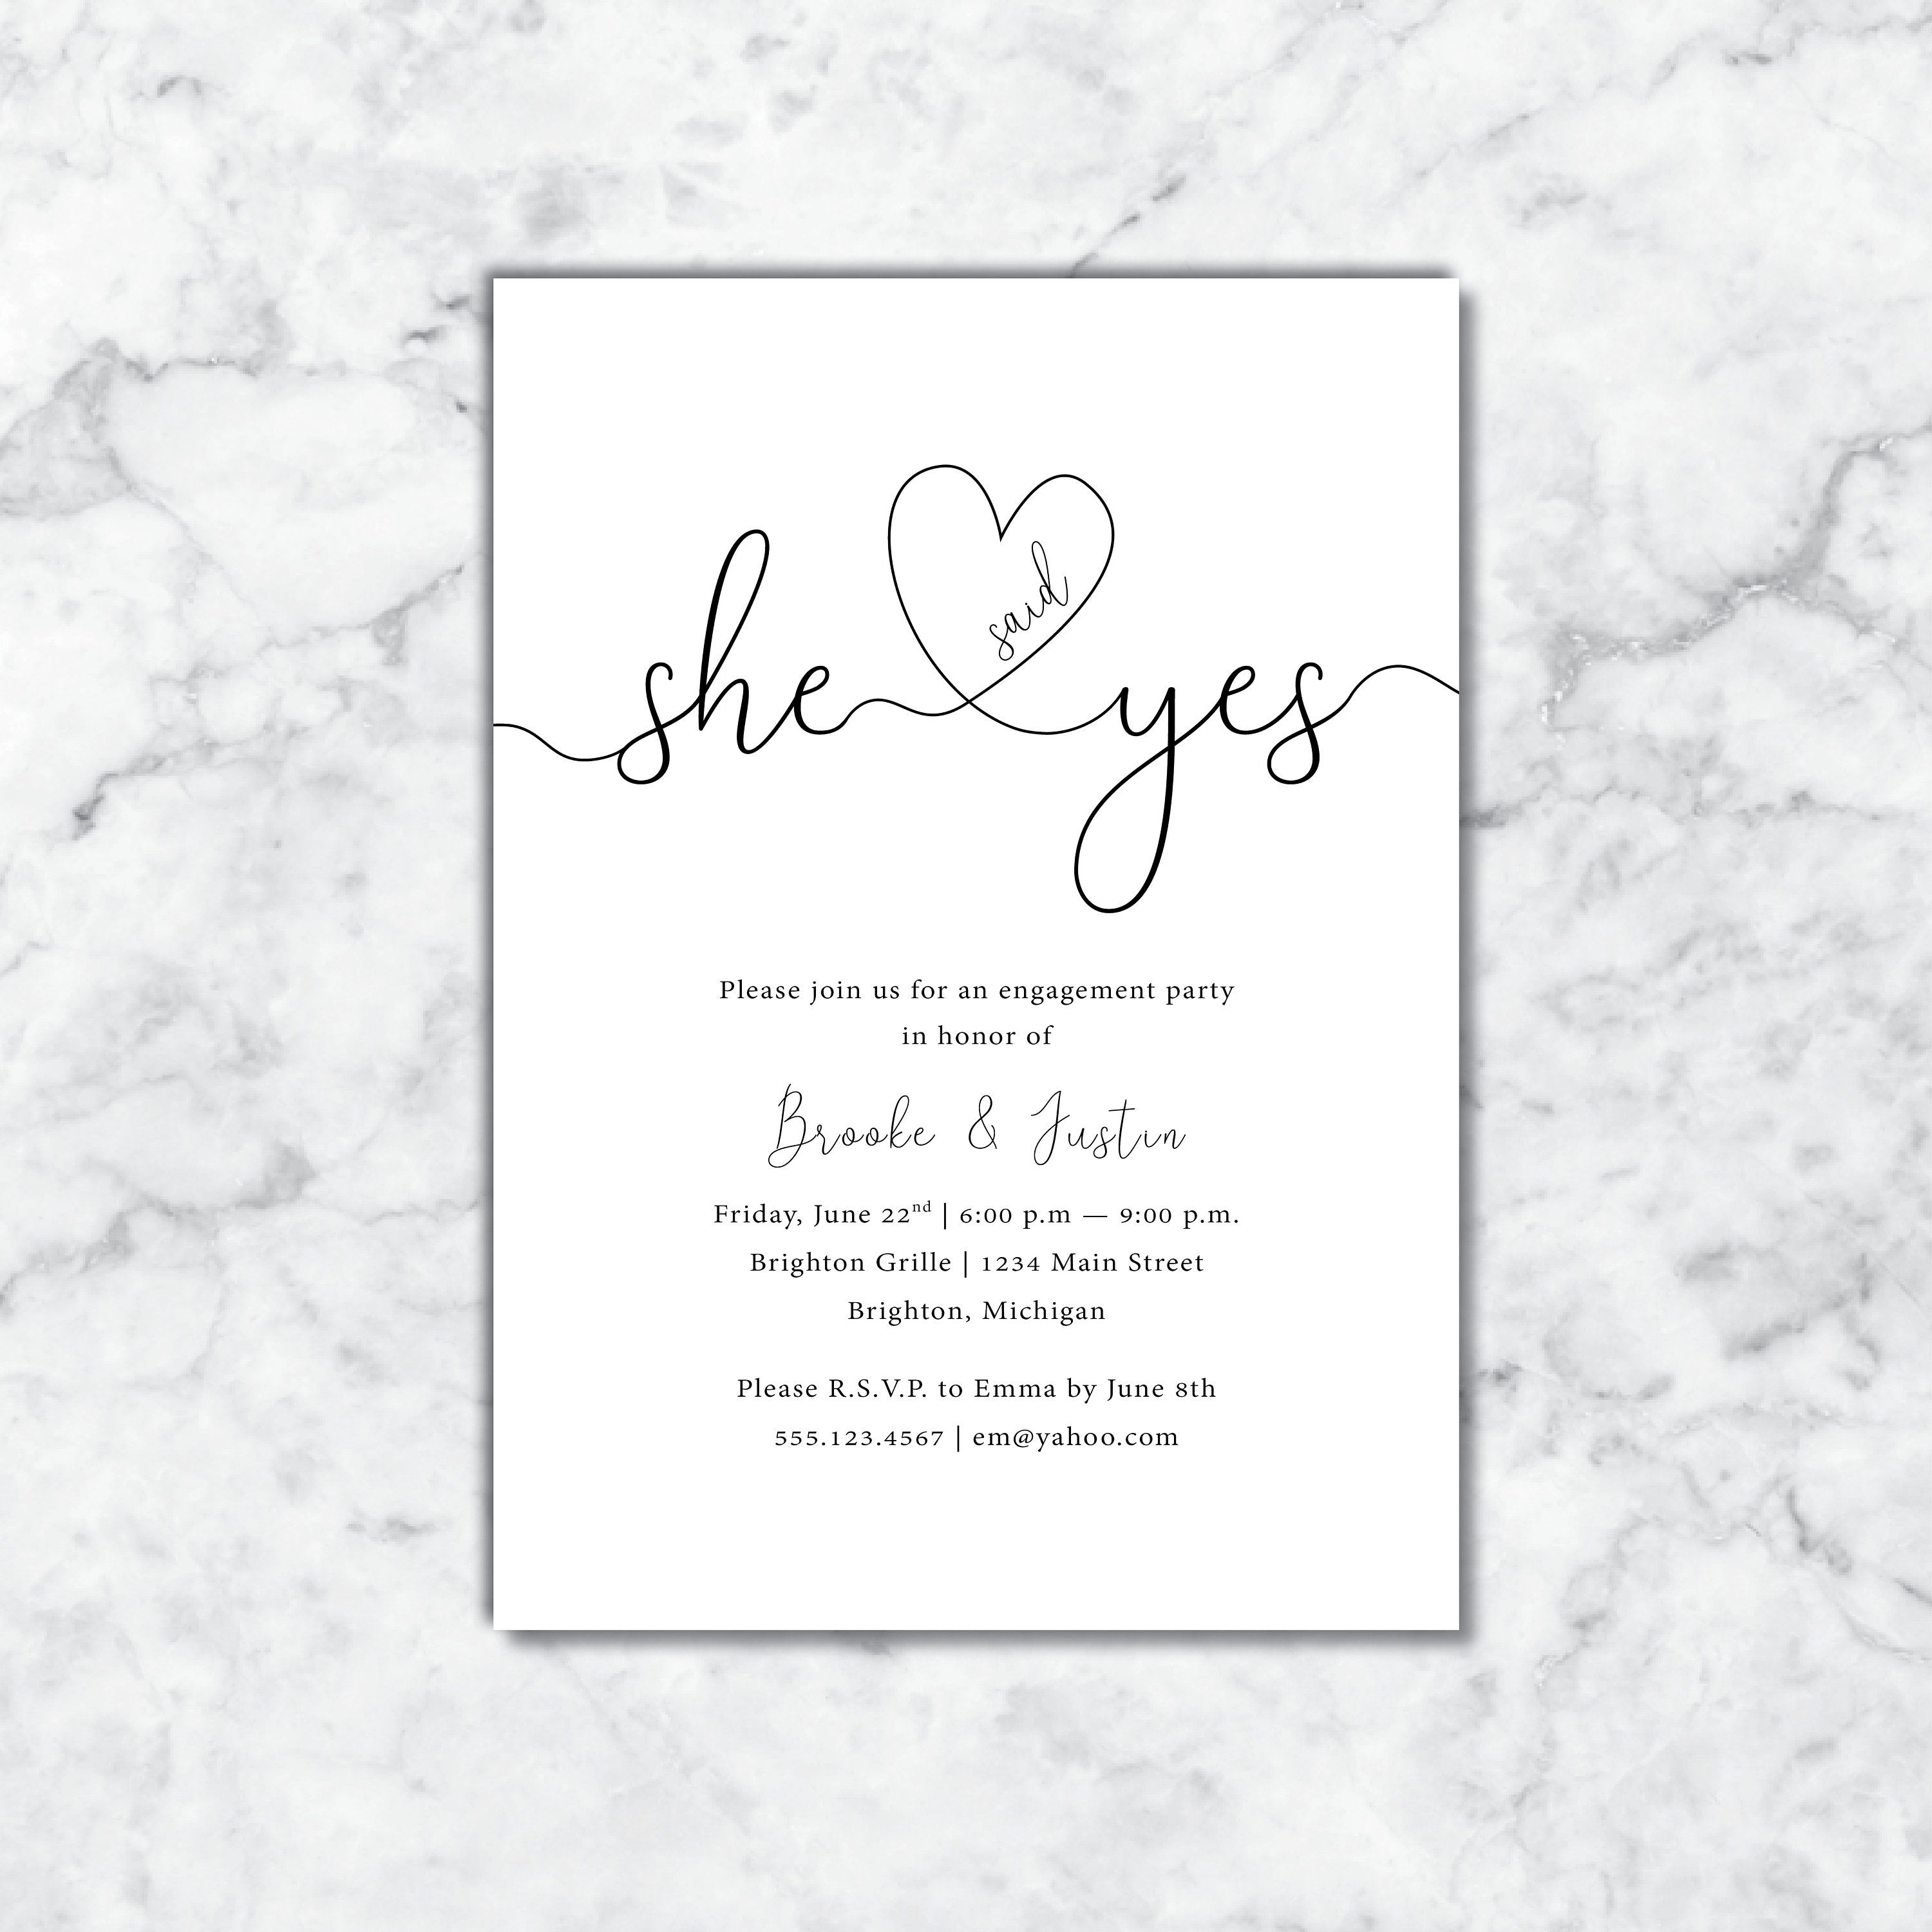 She Said Yes Engagement Party Invitation She Said Yes Invitation Template Printable Engagement Party Invitation She Said Yes With Heart Engagement Party Invitations Printable Engagement Party Invitations Engagement Party